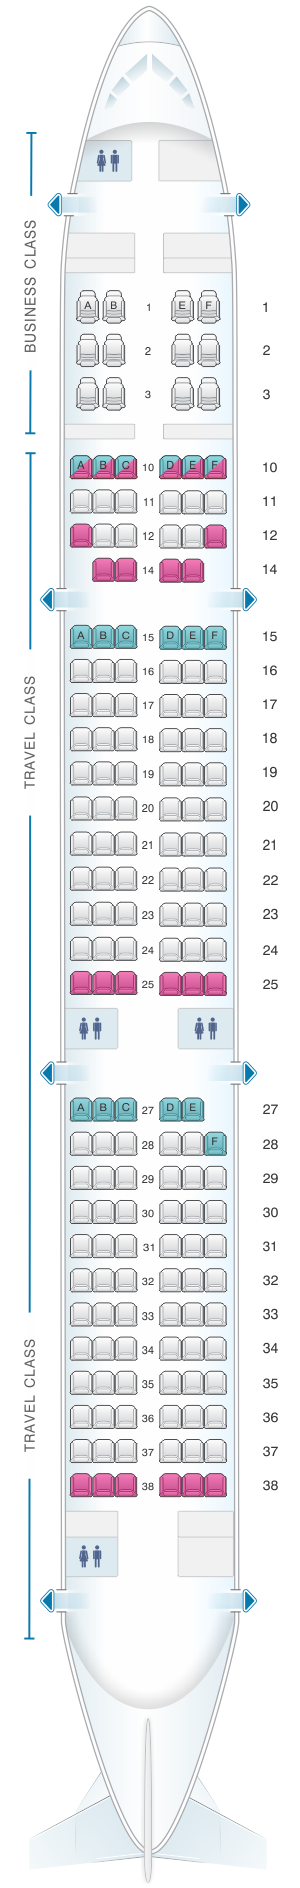 Seat map for Asiana Airlines Airbus A321 200 171PAX